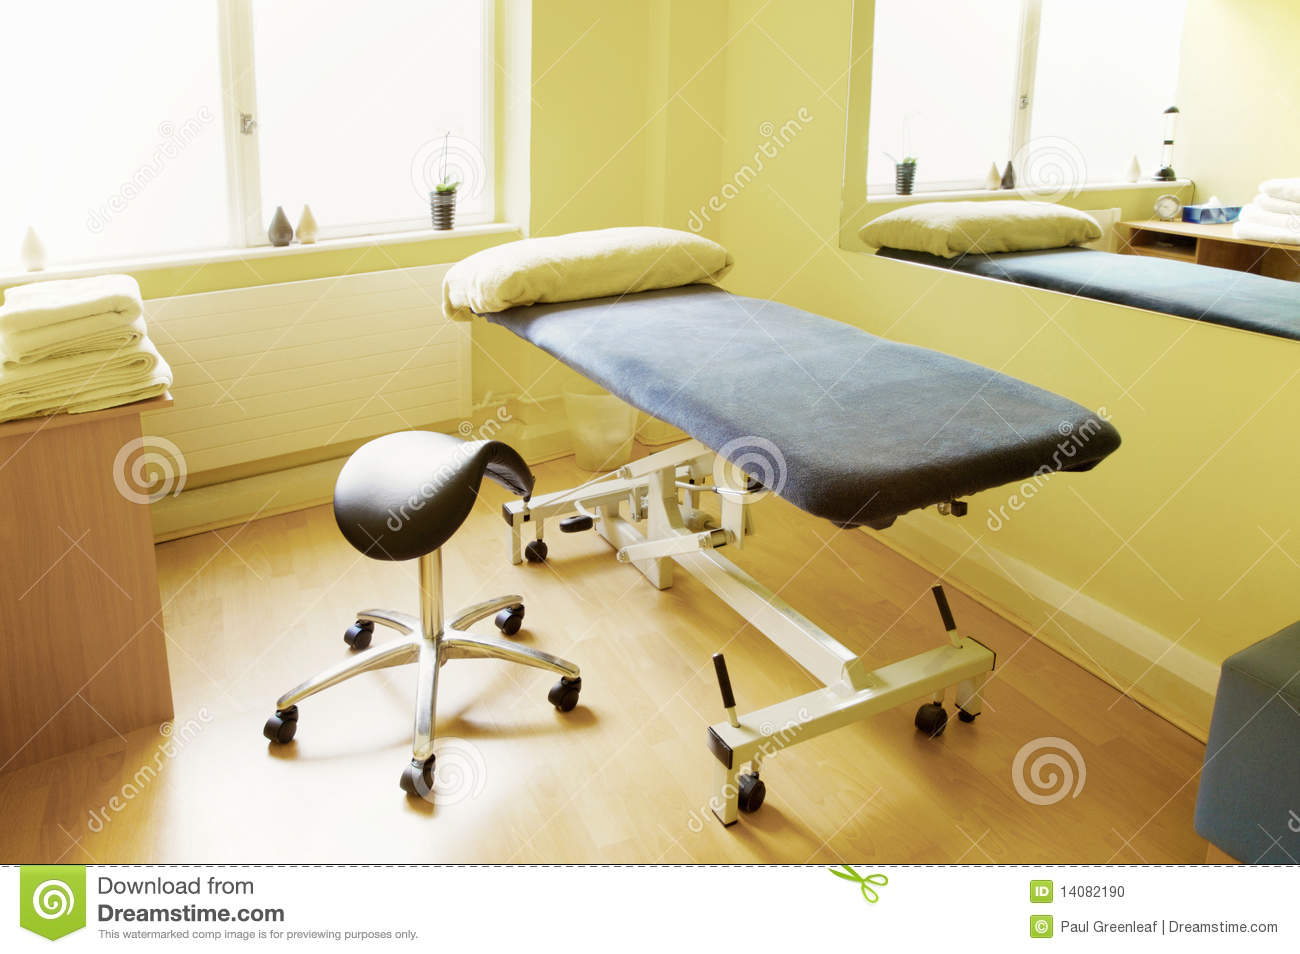 Massage physiotherapy acupuncture treatment room stock for The family room acupuncture